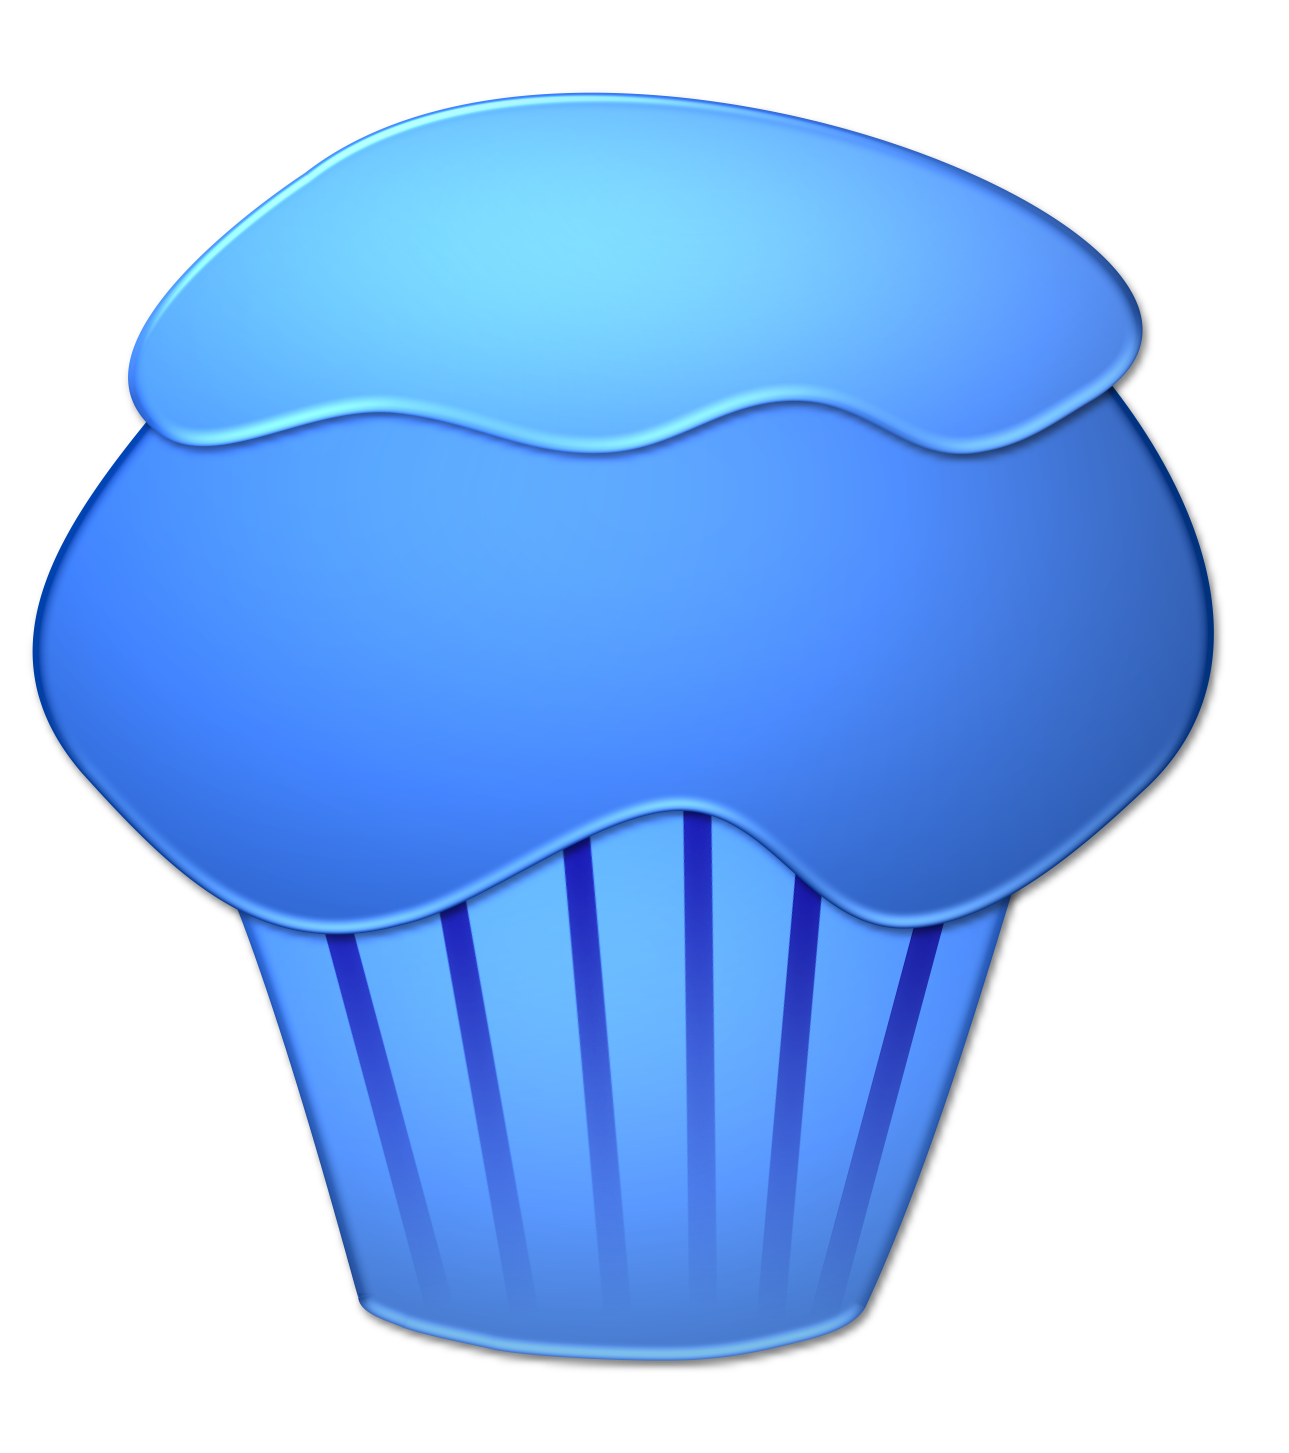 1289x1453 Blueberry Cupcakes Clipart, Explore Pictures